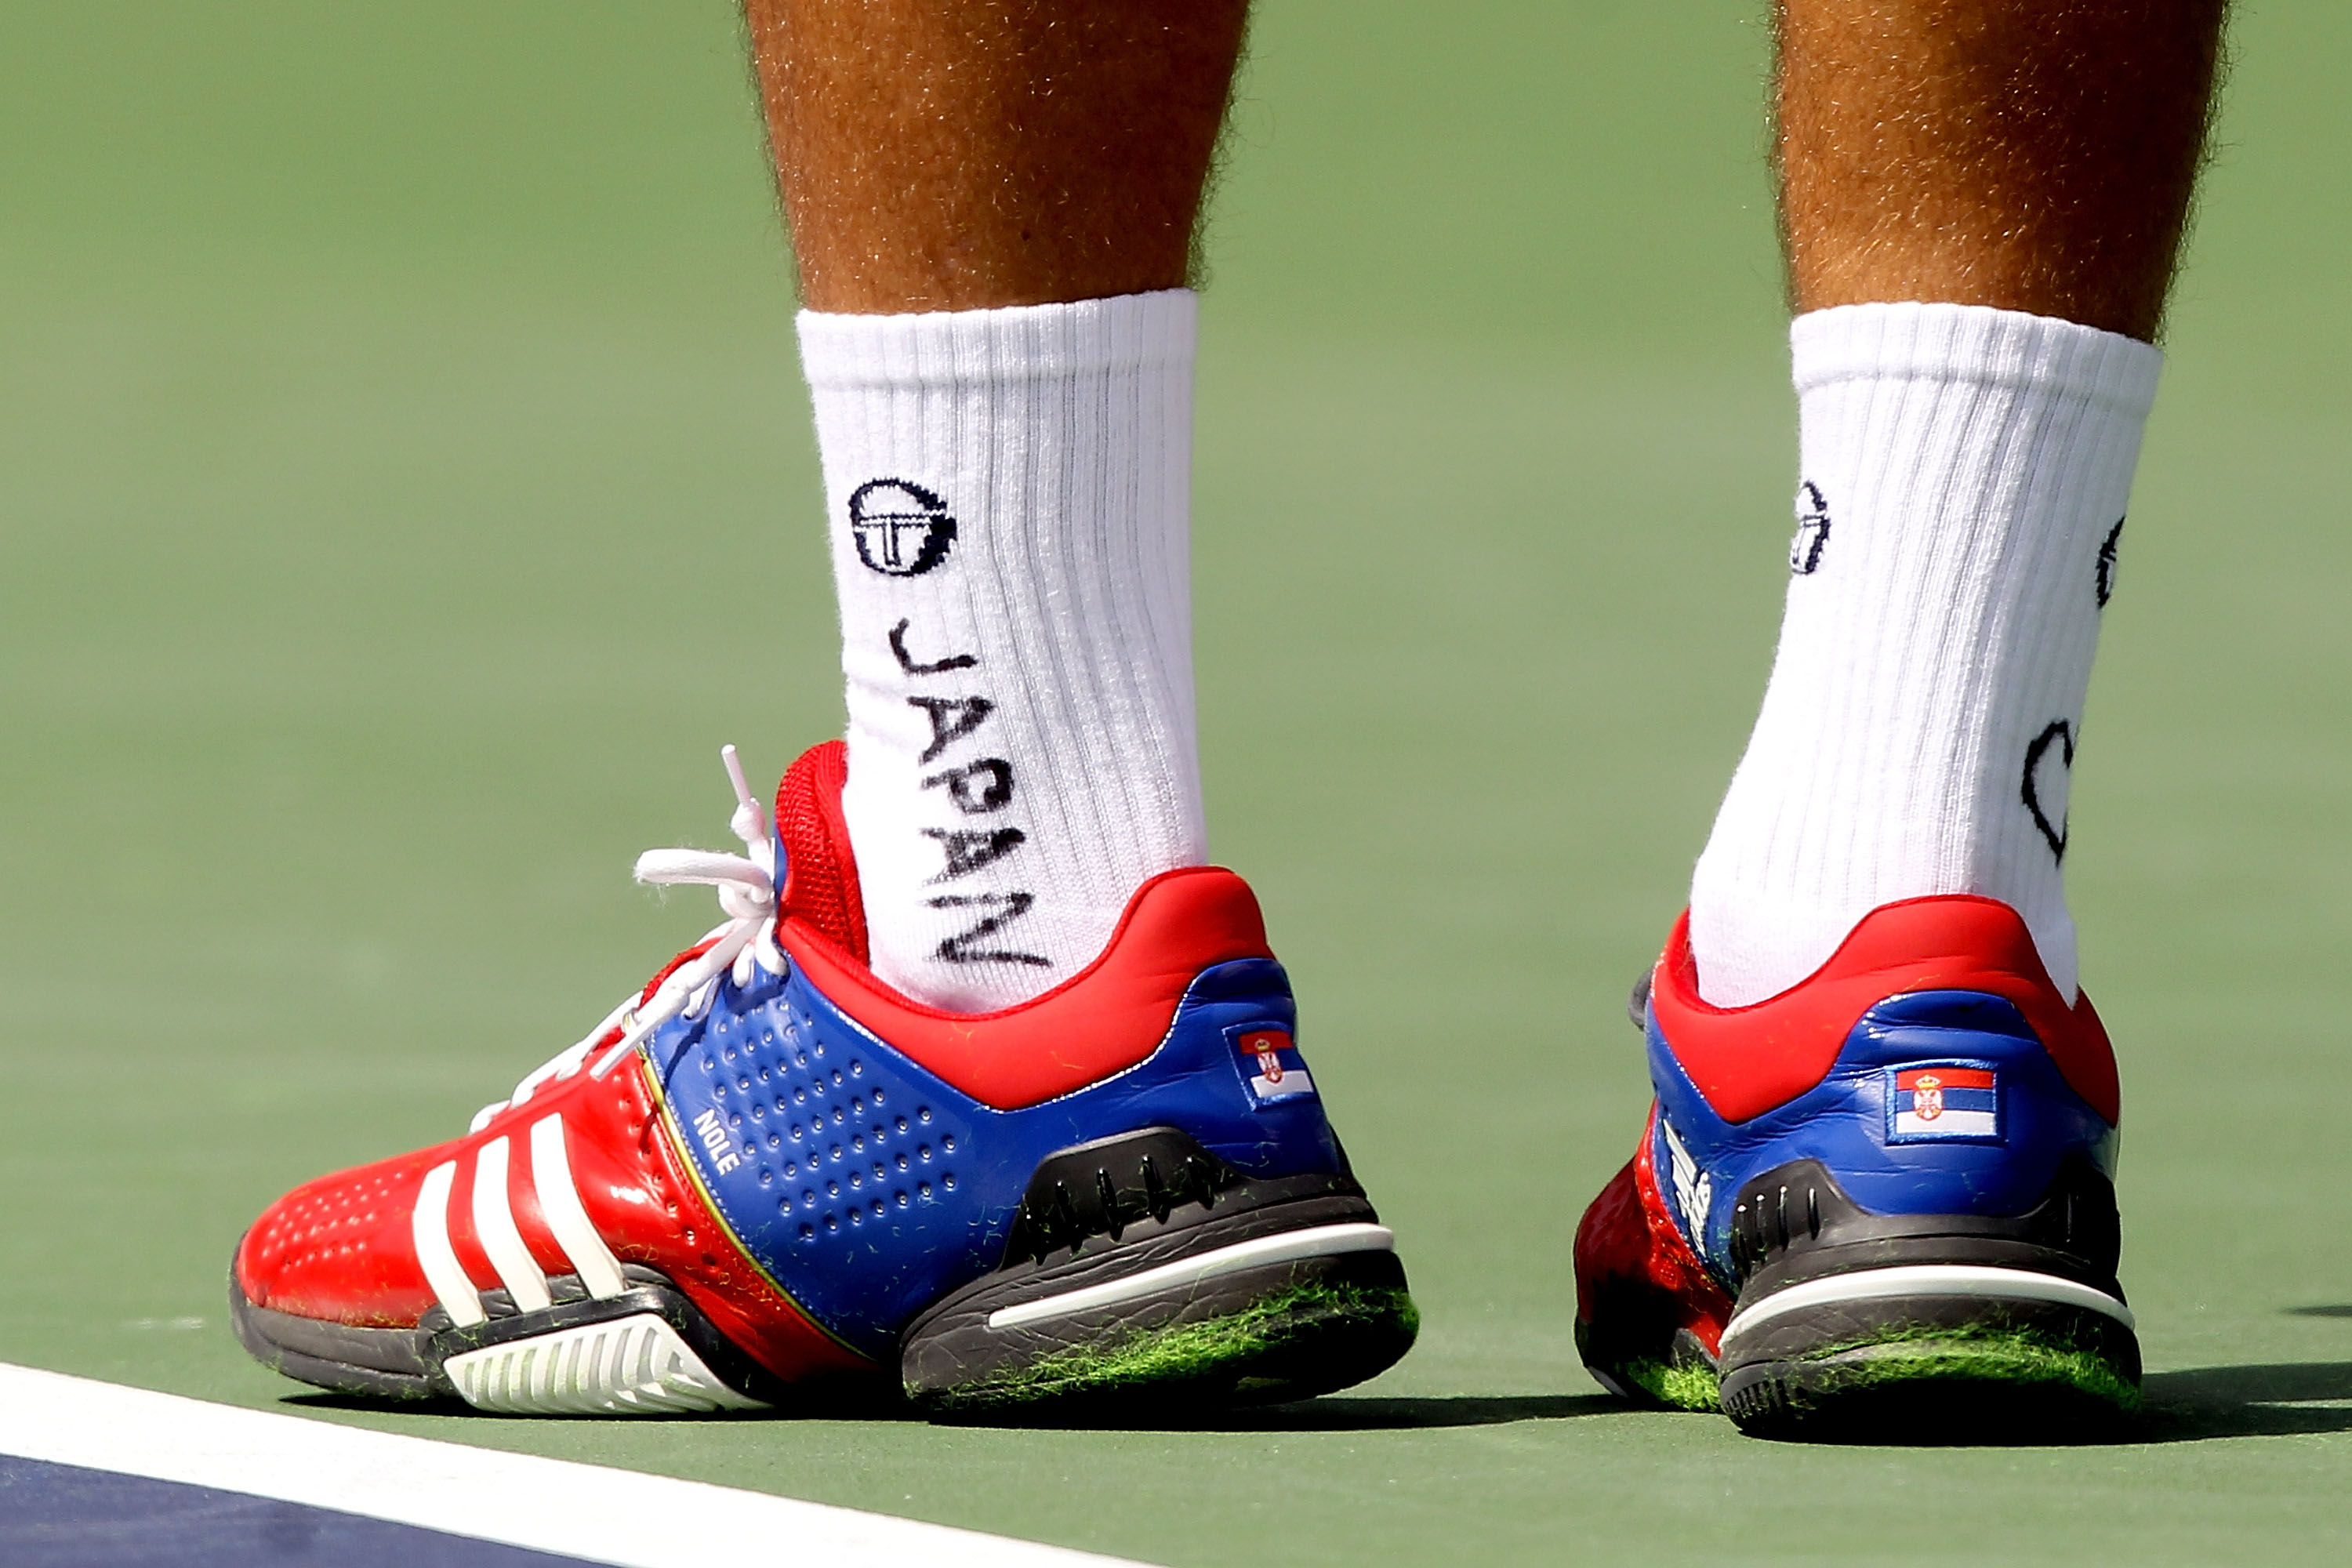 Djokovic paid a tribute to Japan on his socks at Indian Wells.